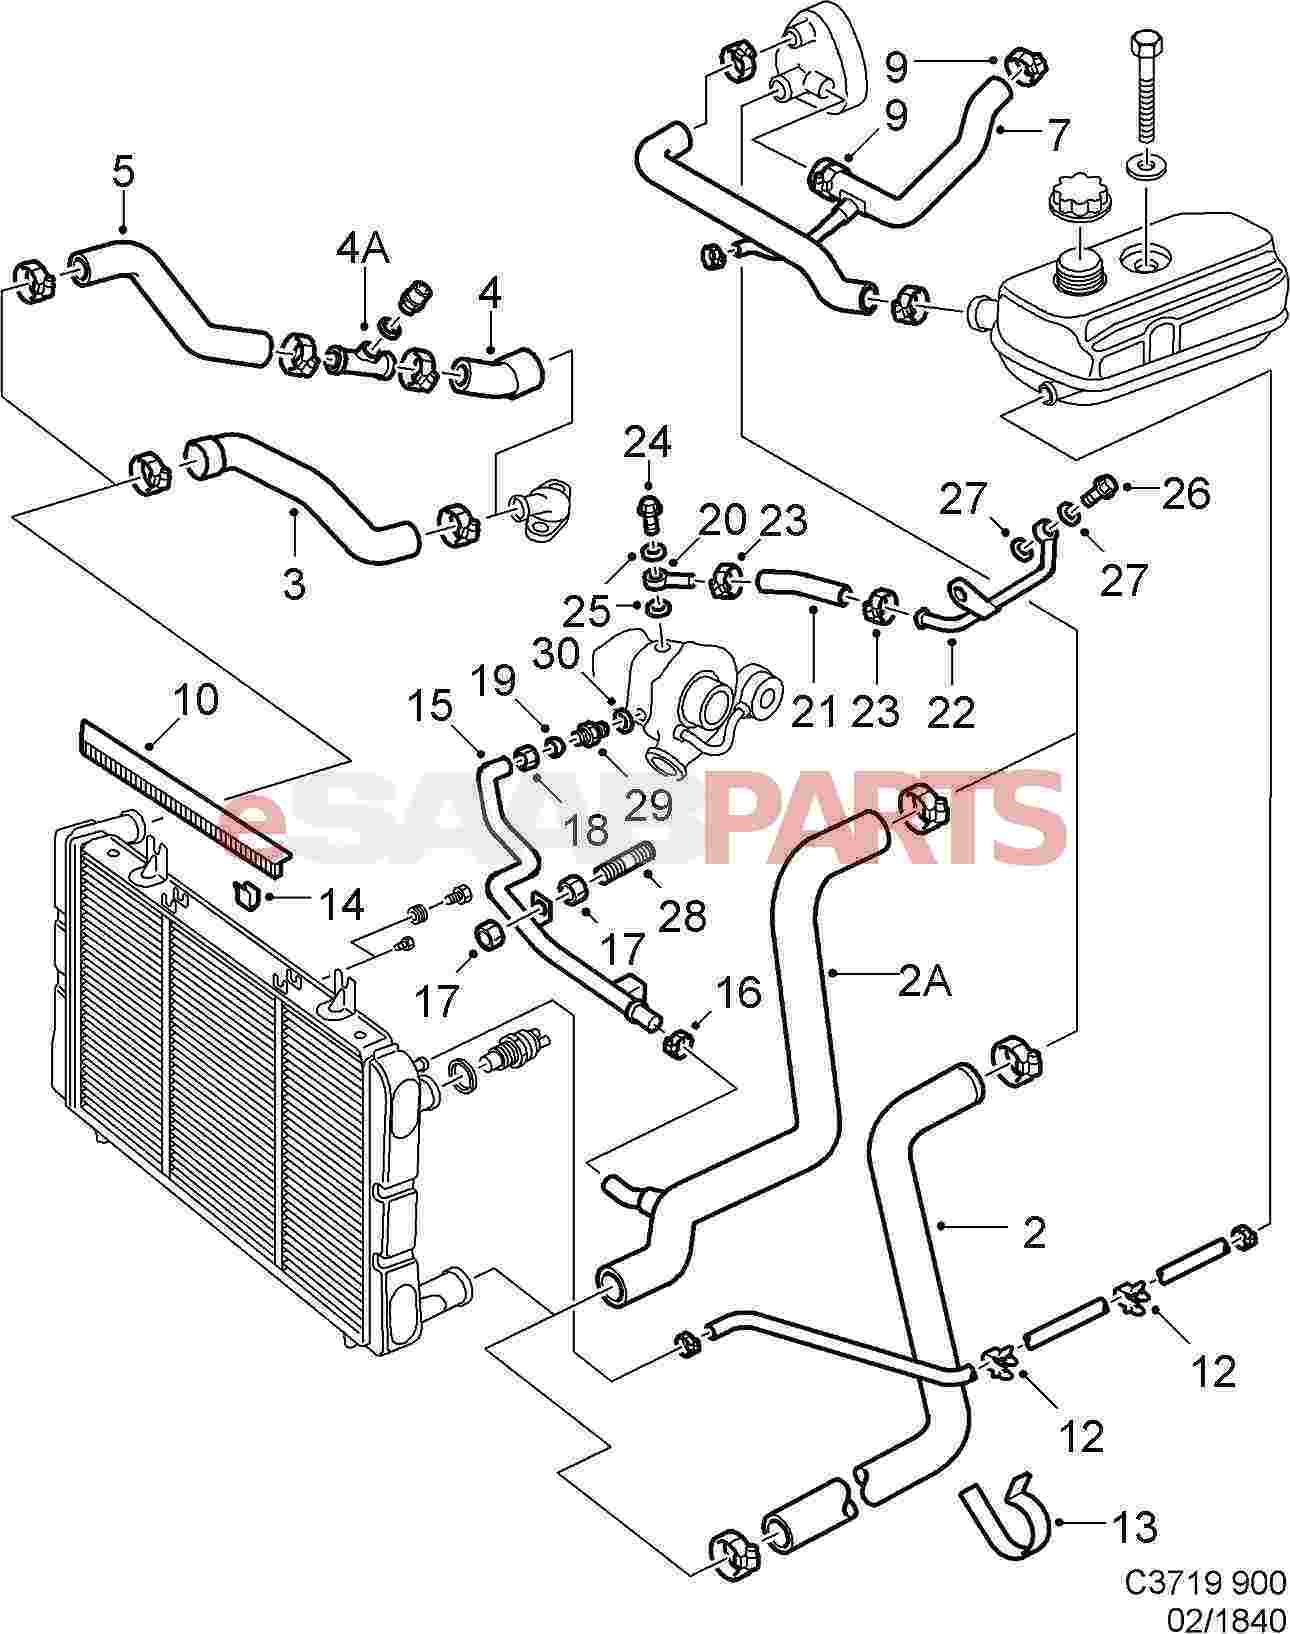 Pleasing 2011 Vw Jetta Engine Diagram Wiring Library Wiring Cloud Strefoxcilixyz